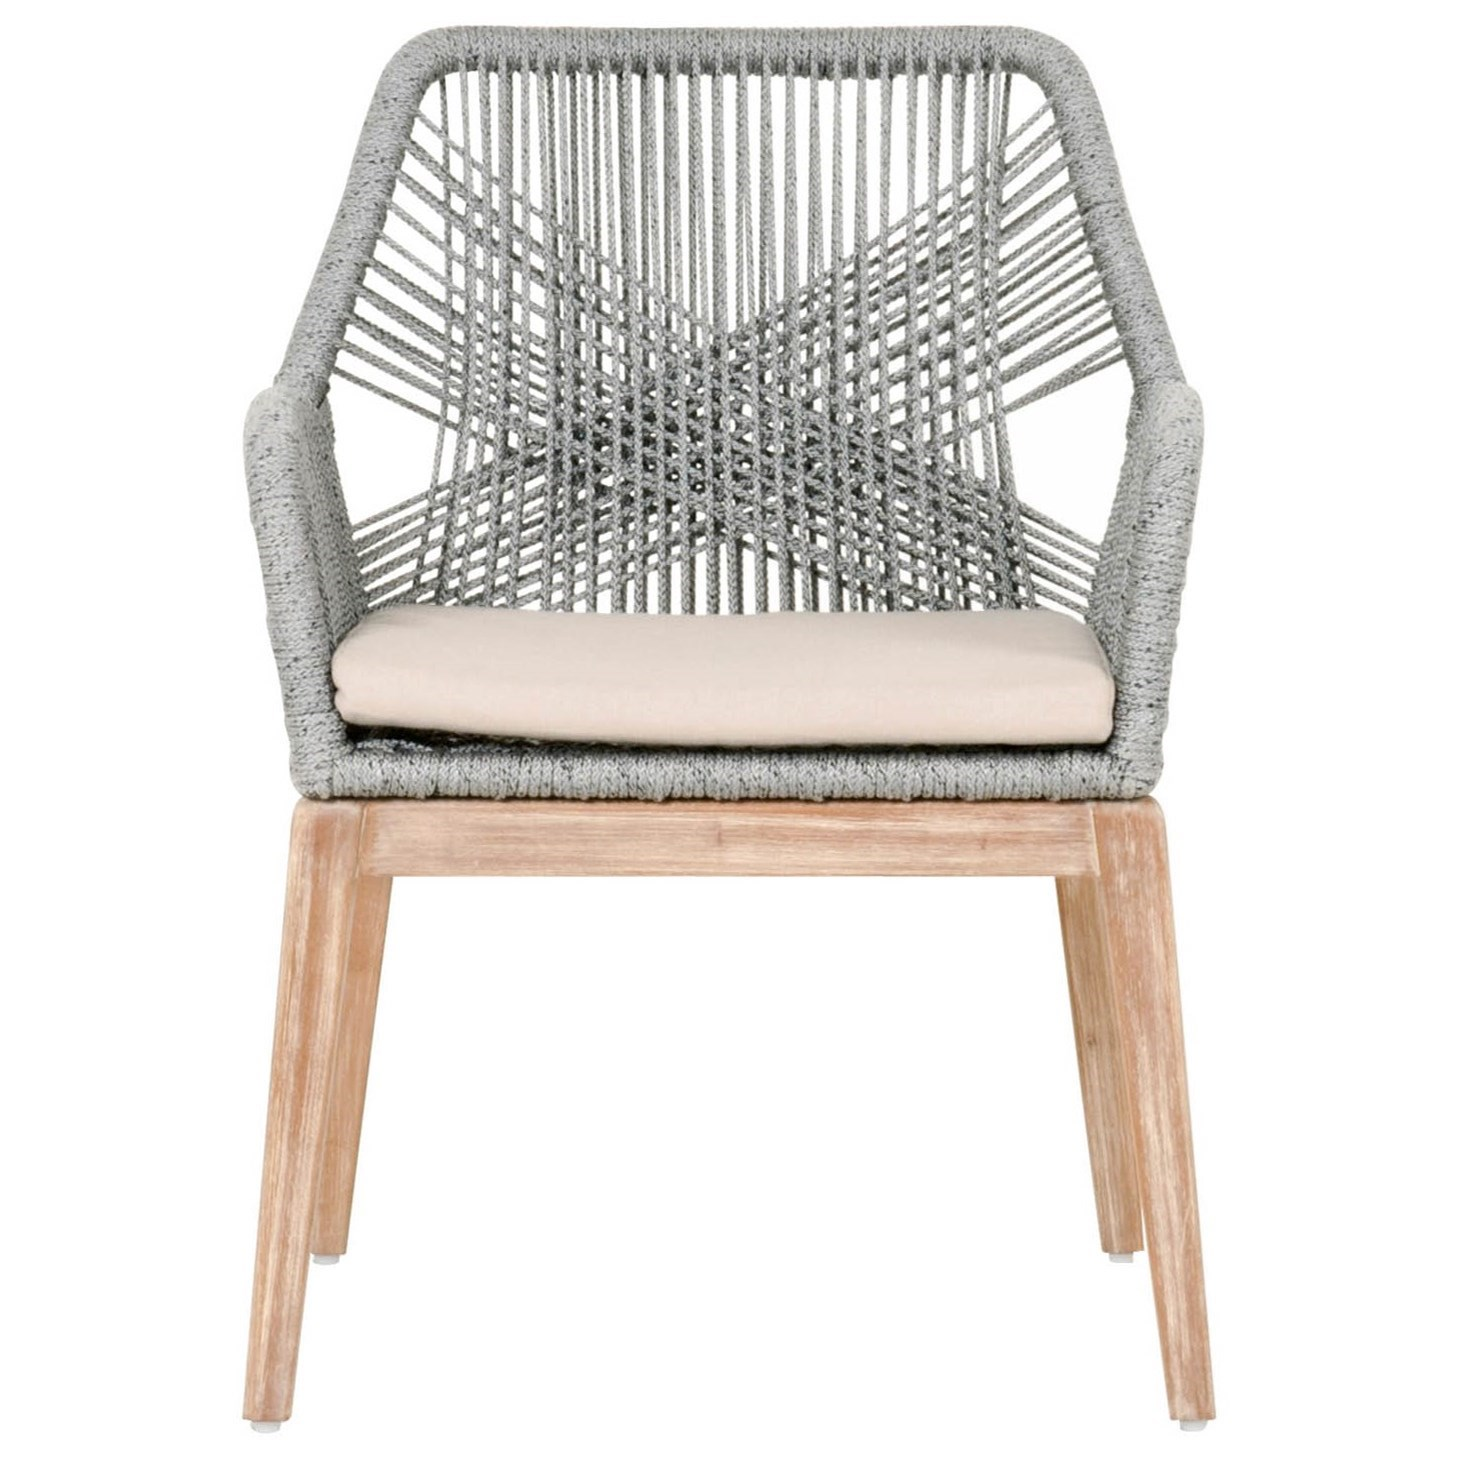 Woven Loom Arm Chair by Essentials for Living at Baer's Furniture